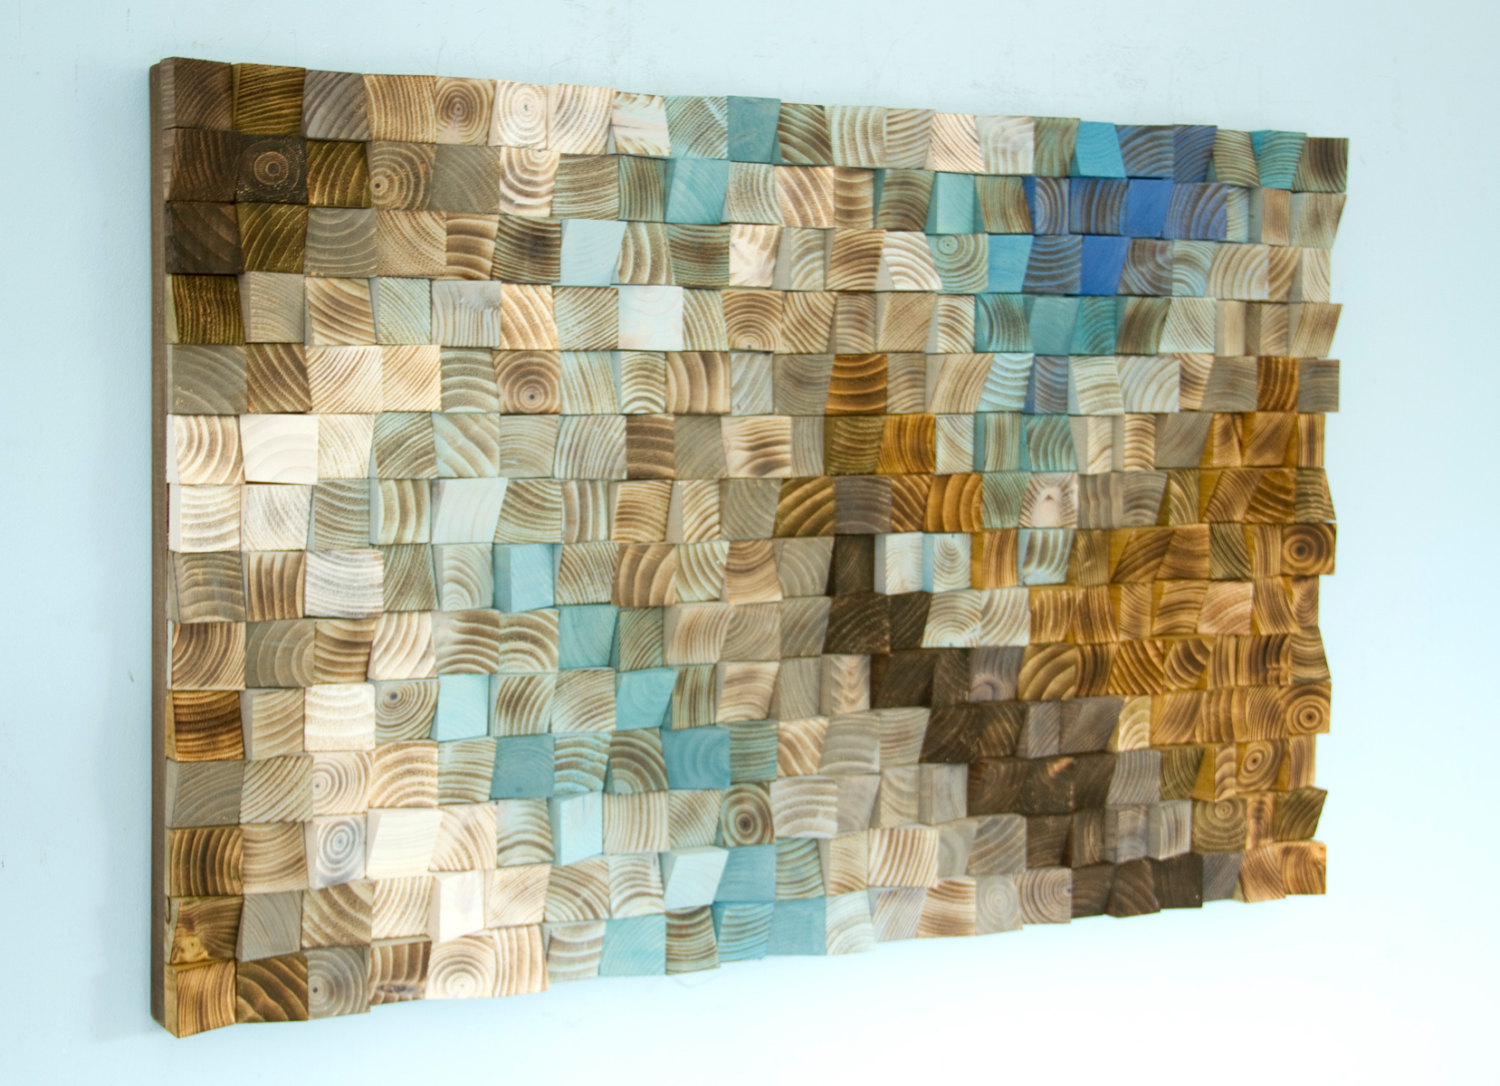 Wood wall art mosaic office wall decor geometric art 24 for Wall accessories